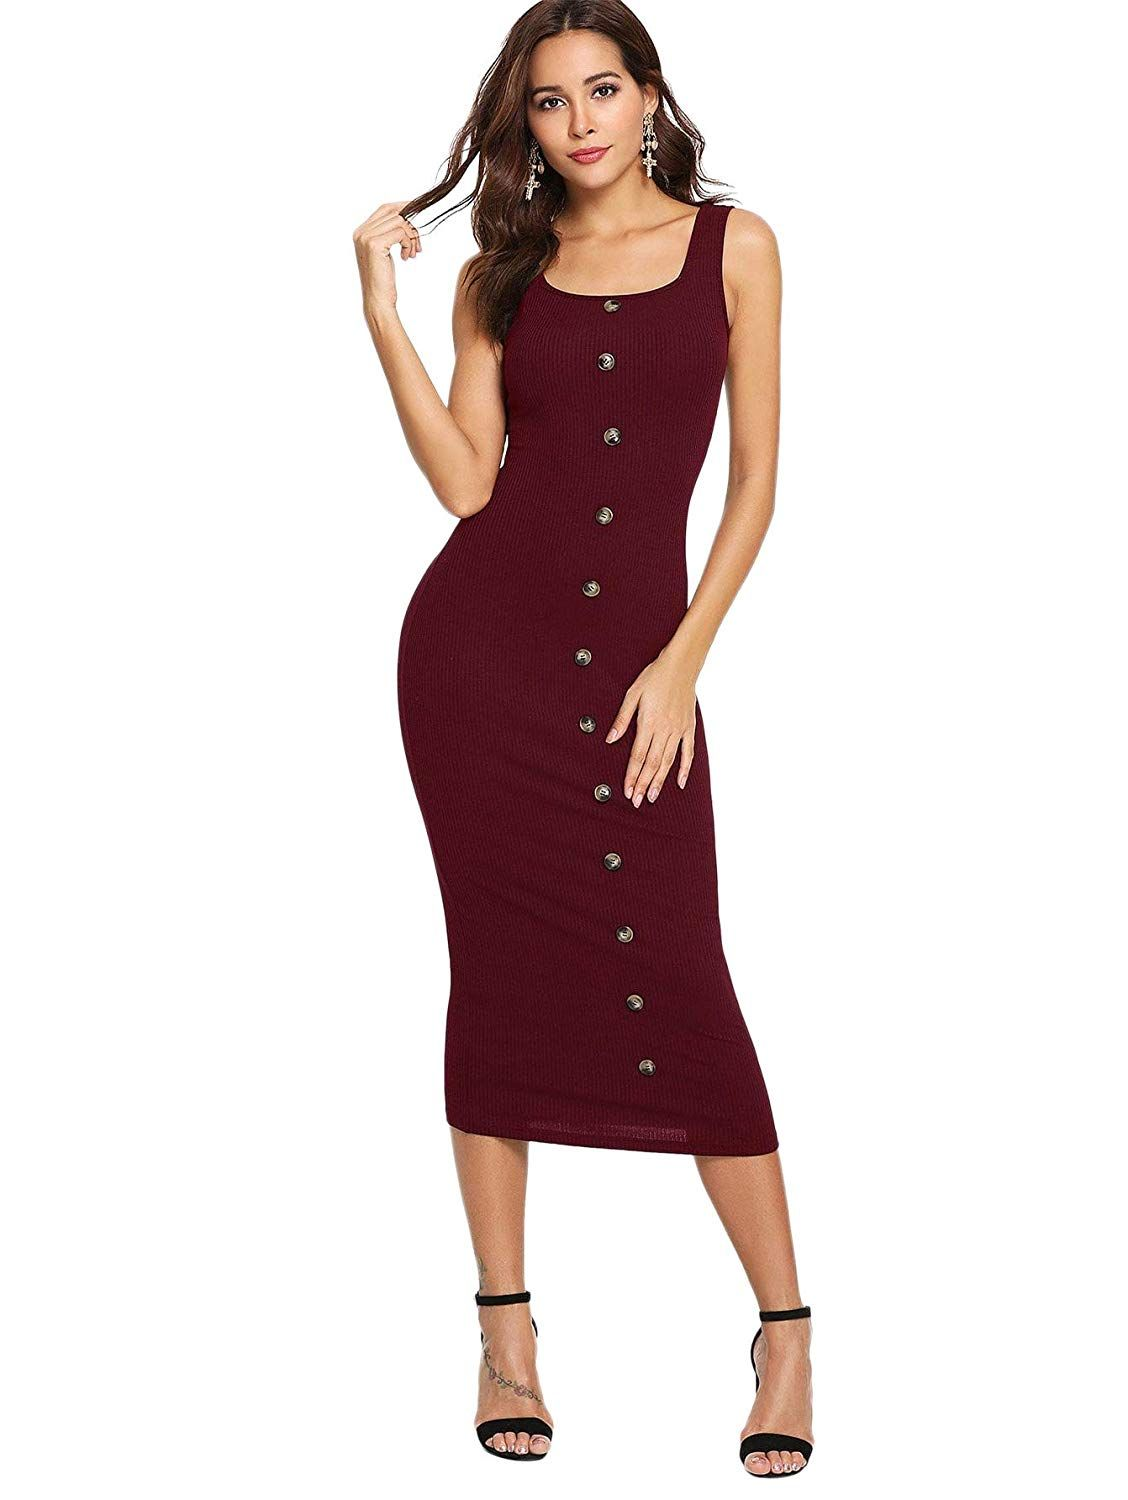 2ea5a3462b SheIn Women's Sleeveless Square Neck Button Front Bodycon Ribbed Knit Tank  Dress at Amazon Women's Clothing store: